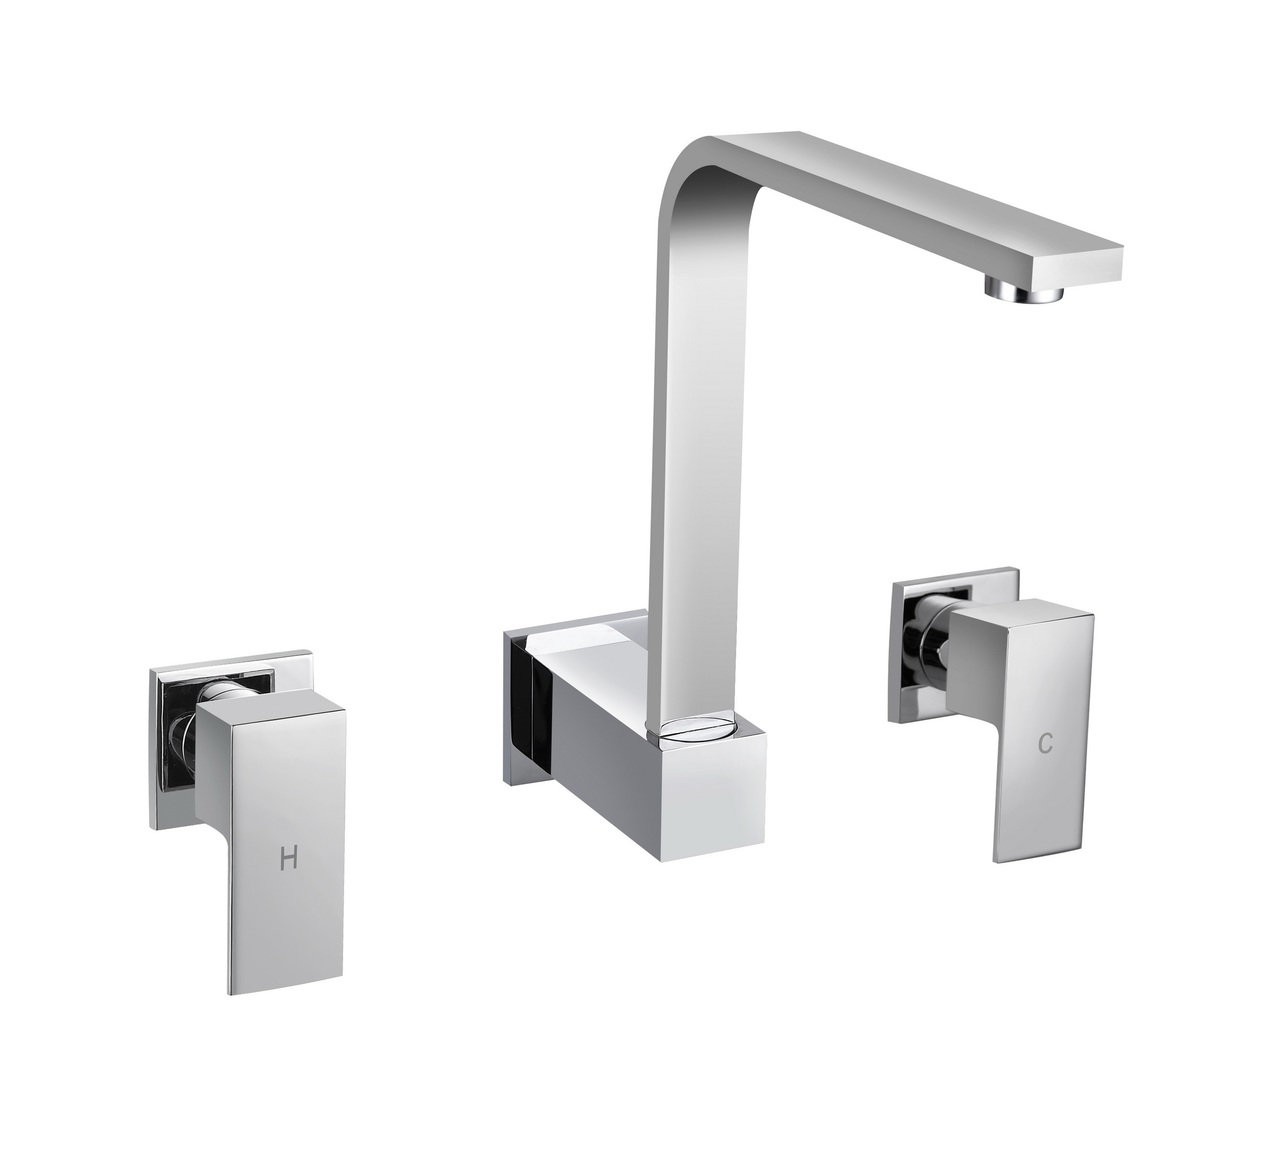 cheap kitchen sink and tap sets aid artisan stand mixer set square wall the warehouse bathroom